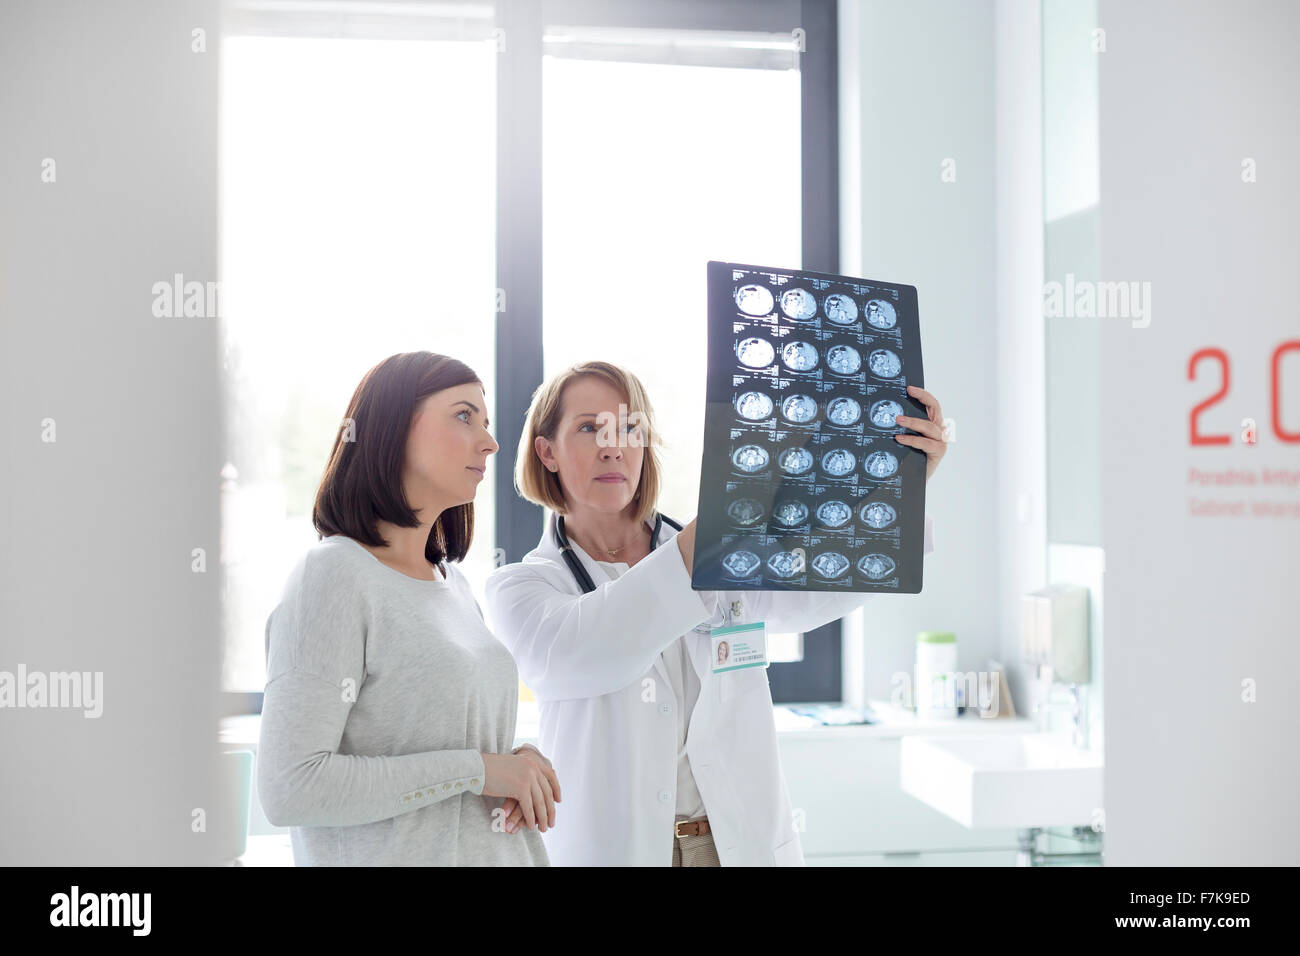 Serious doctor and patient reviewing x-rays in examination room - Stock Image